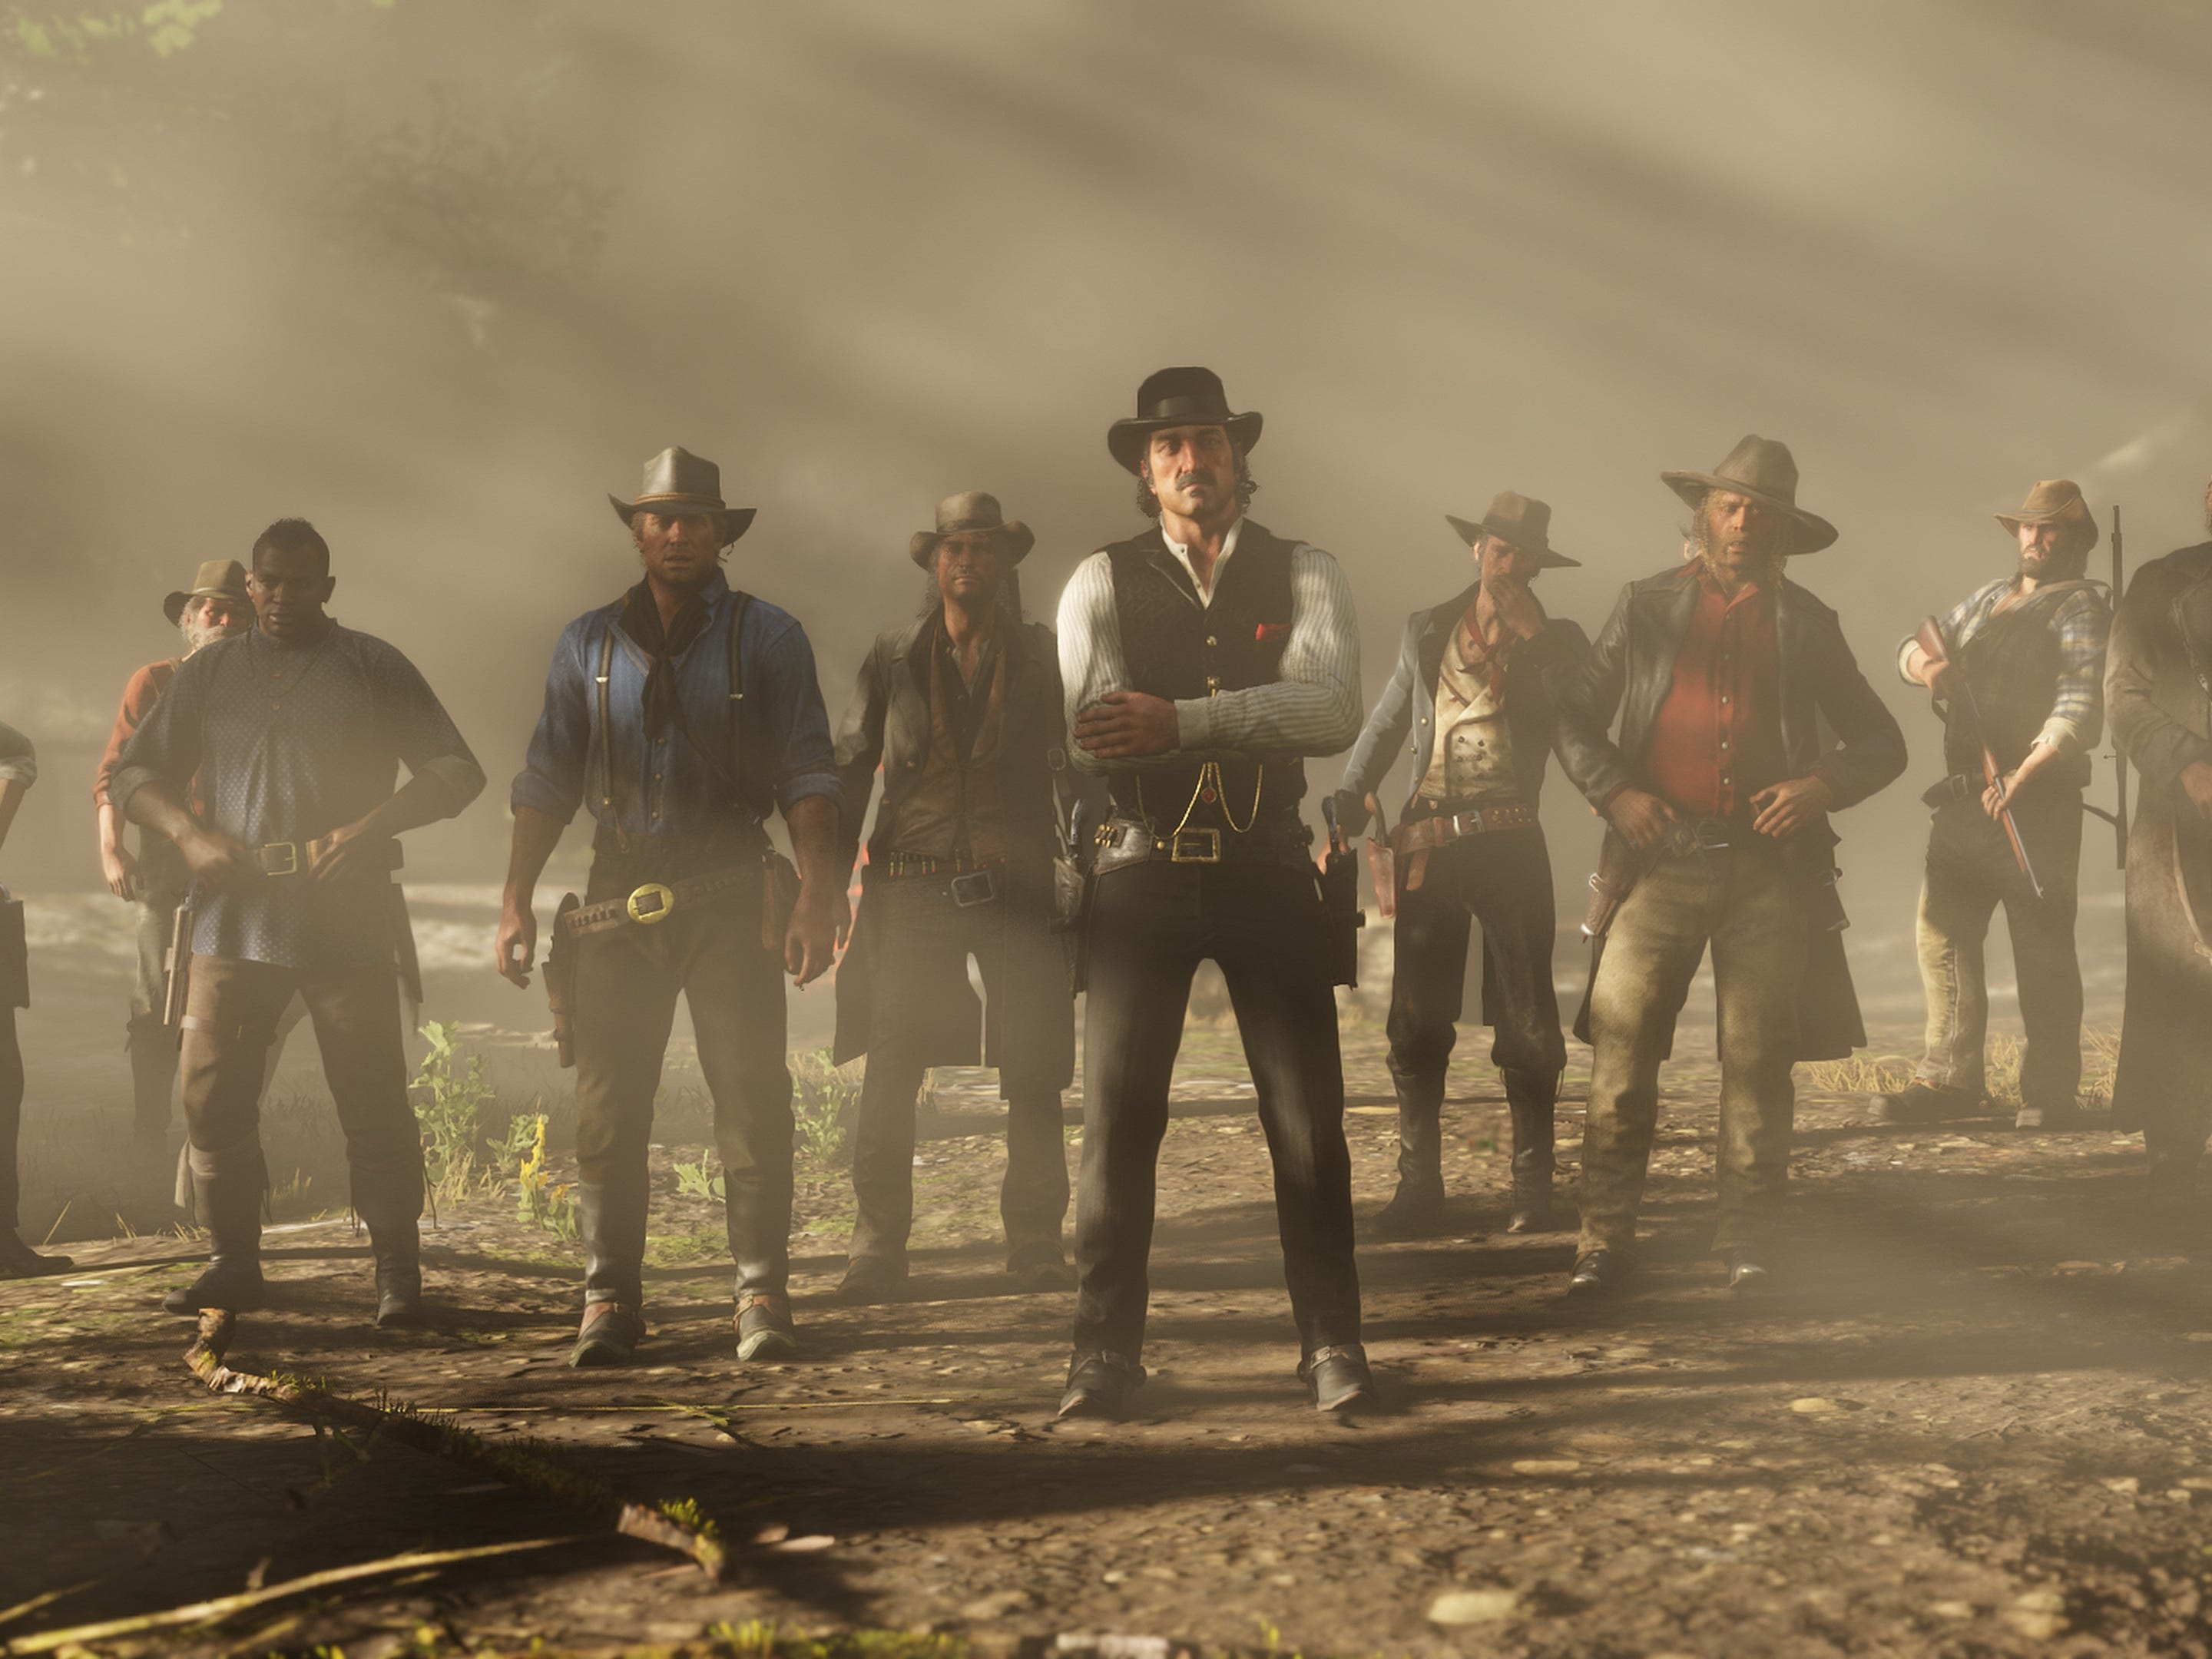 For more than twenty years, Dutch van der Linde, at center, has led the gang, which includes Arthur Morgan, fourth from the left. But as the events in 'Red Dead Redemption 2' unfold, the gang's past -- and America's future -- could lead to their downfall.